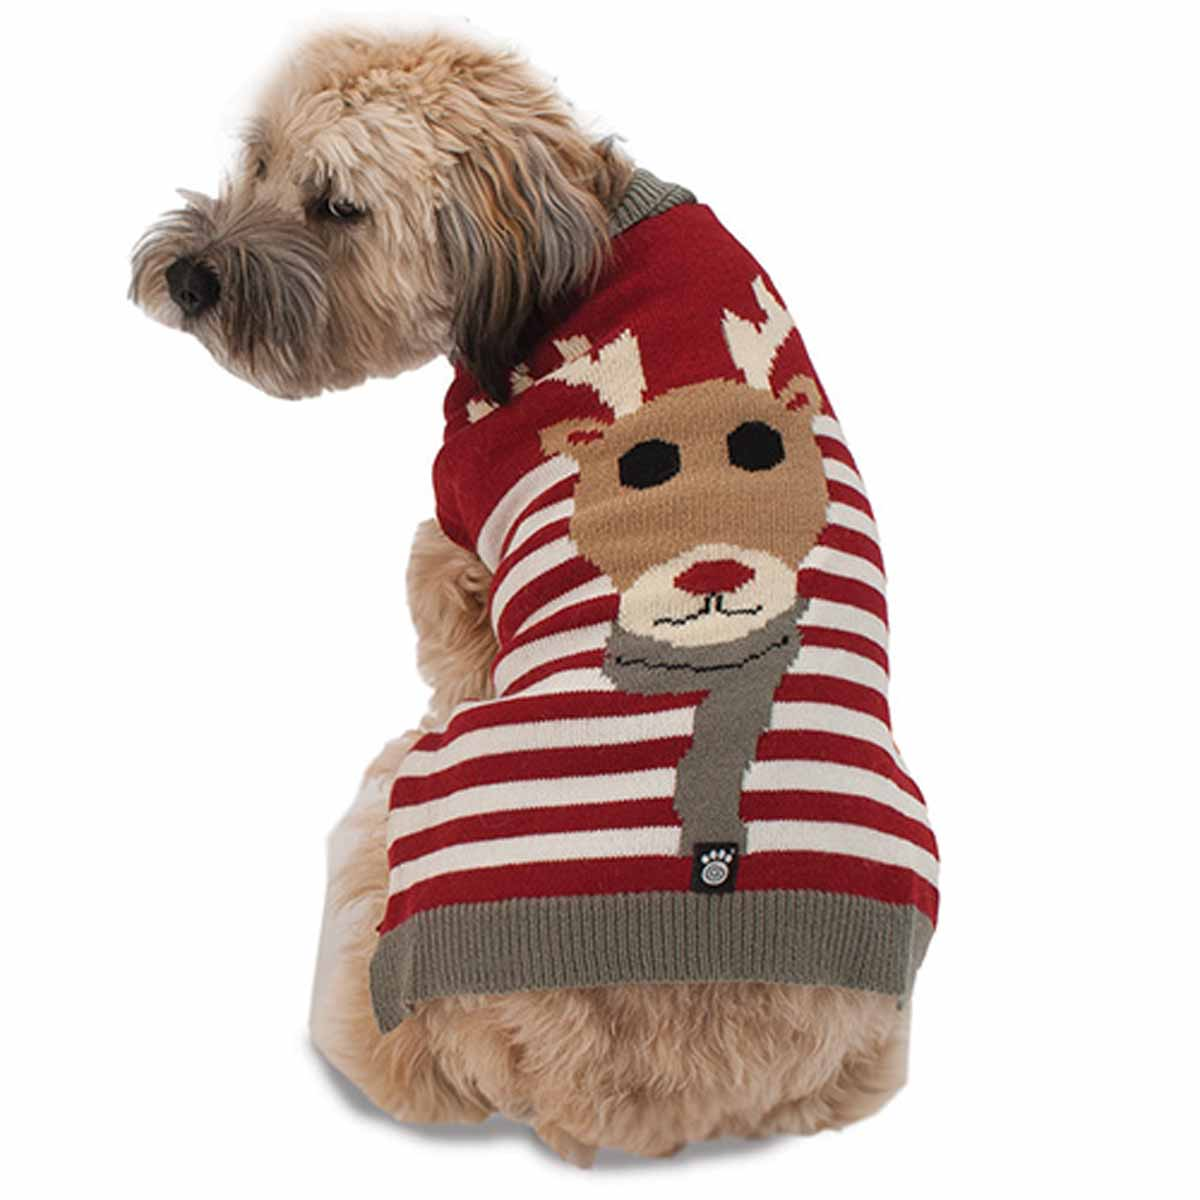 Rudys Reindeer Dog Sweater by Petrageous BaxterBoo